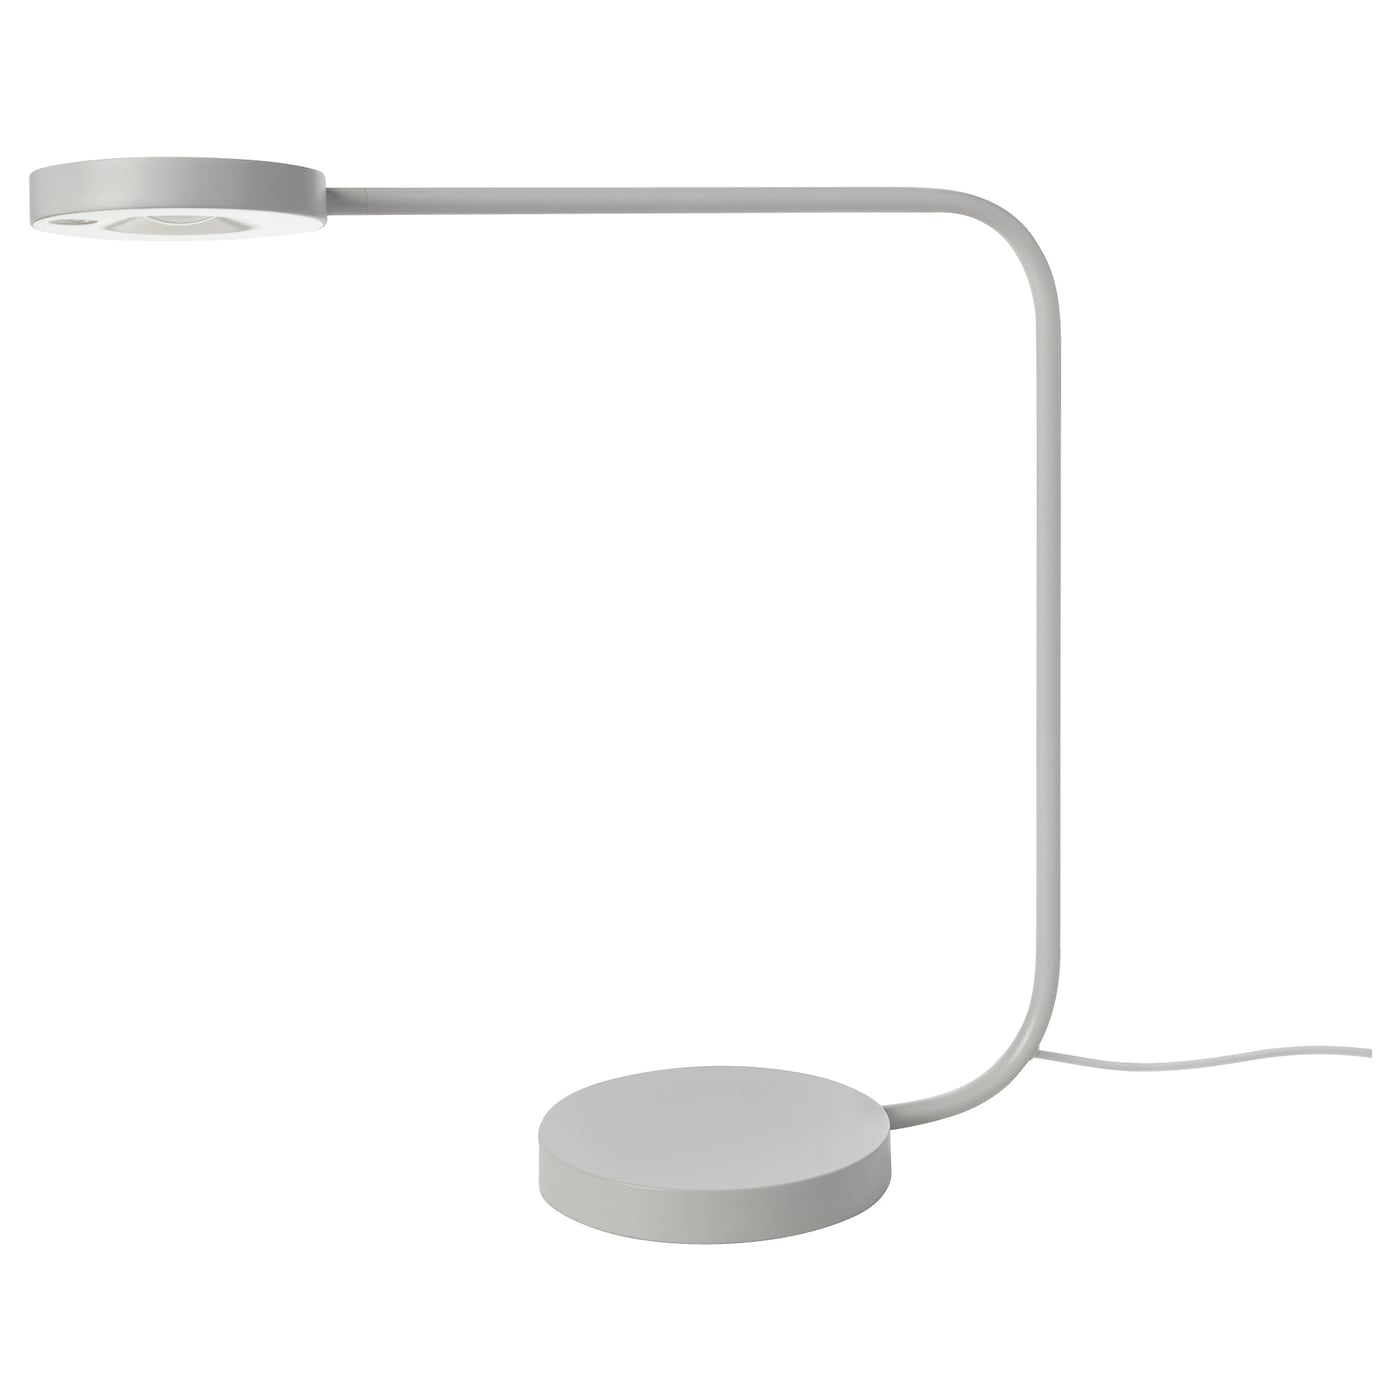 Ypperlig led table lamp light grey ikea ikea ypperlig led table lamp good non glare light aloadofball Image collections